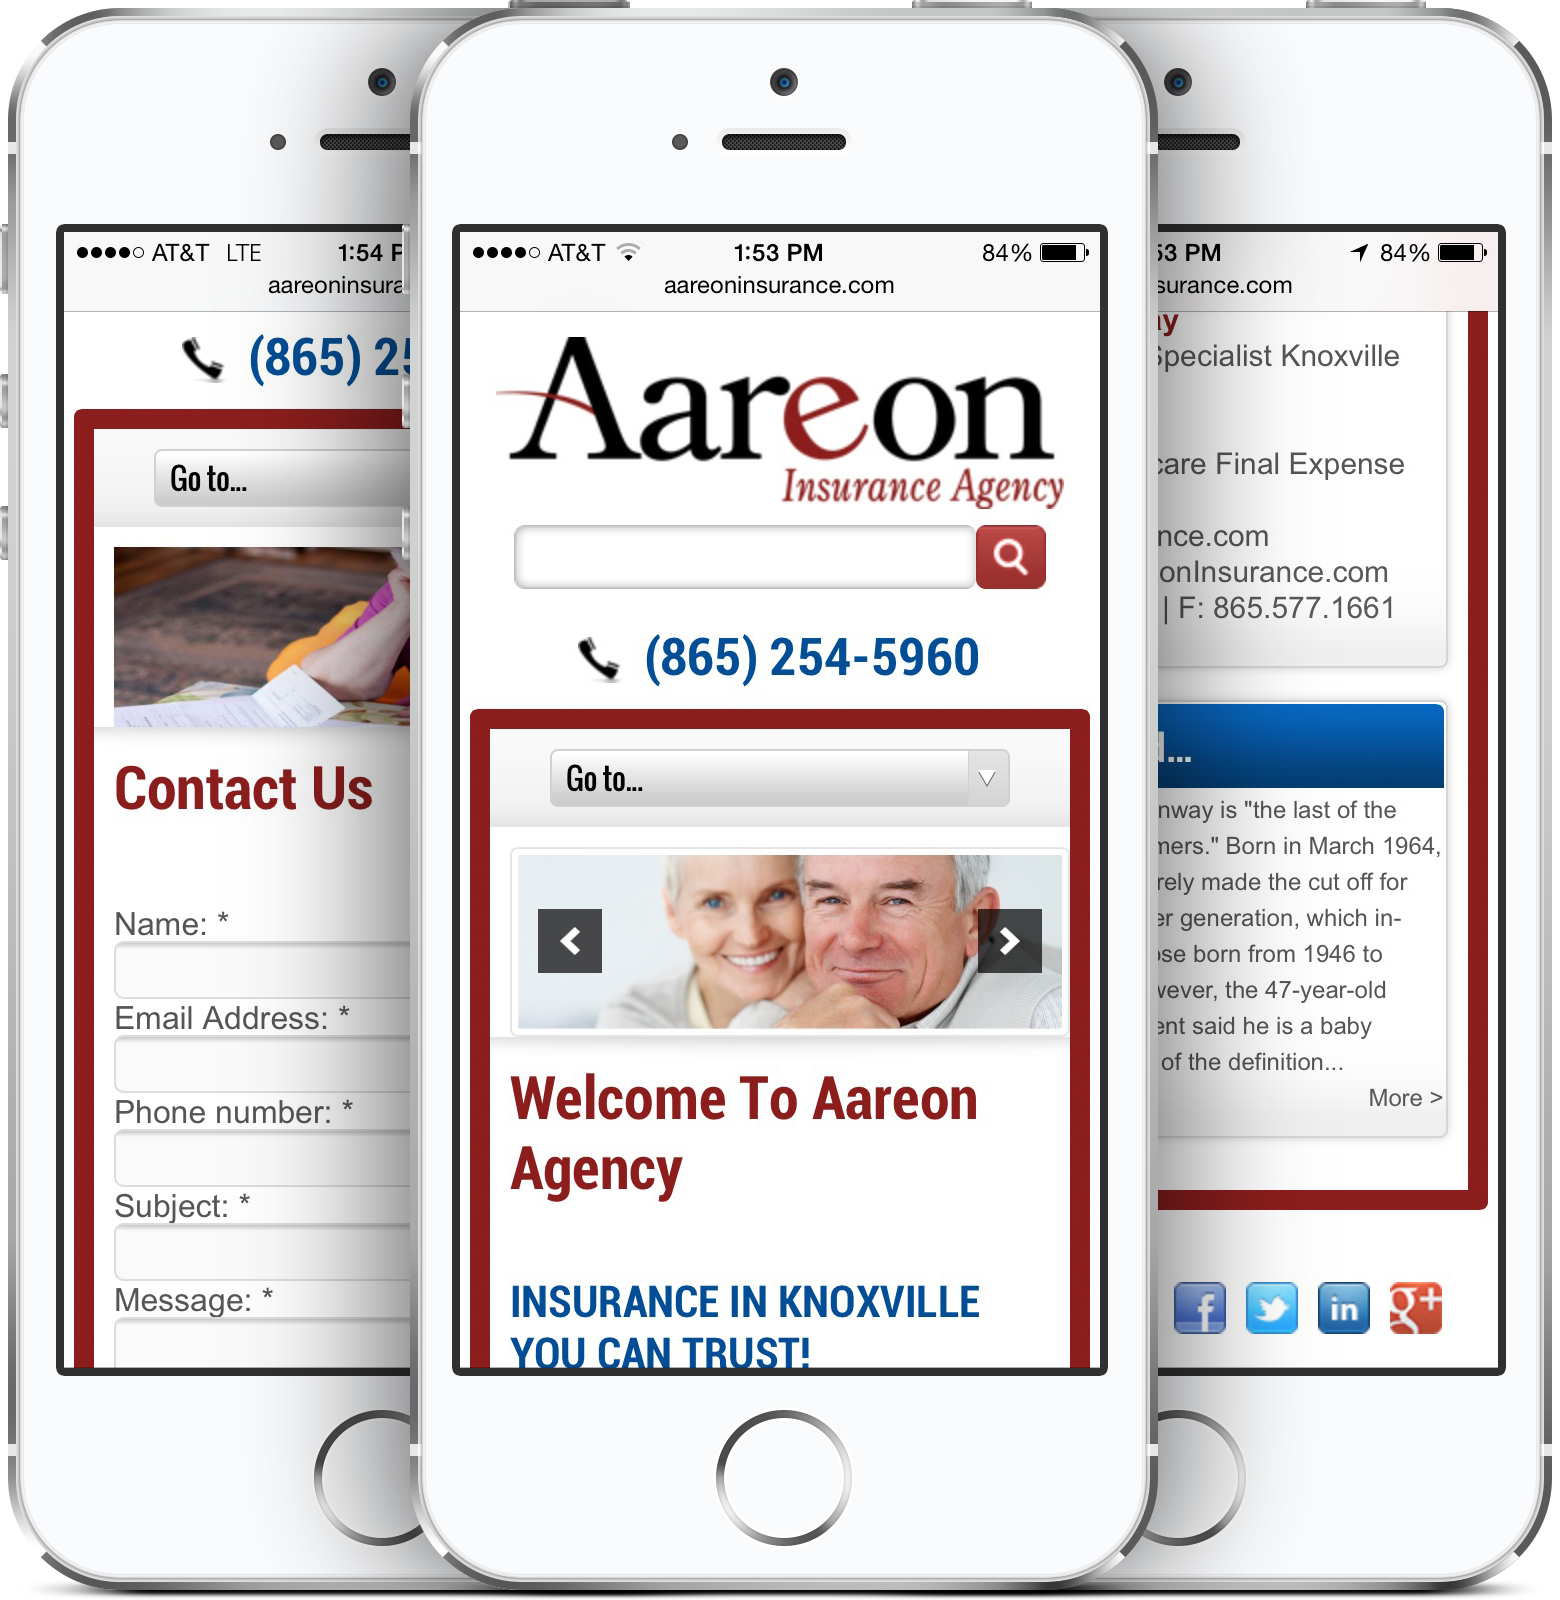 Aareon Insurance Agency on an iPhone